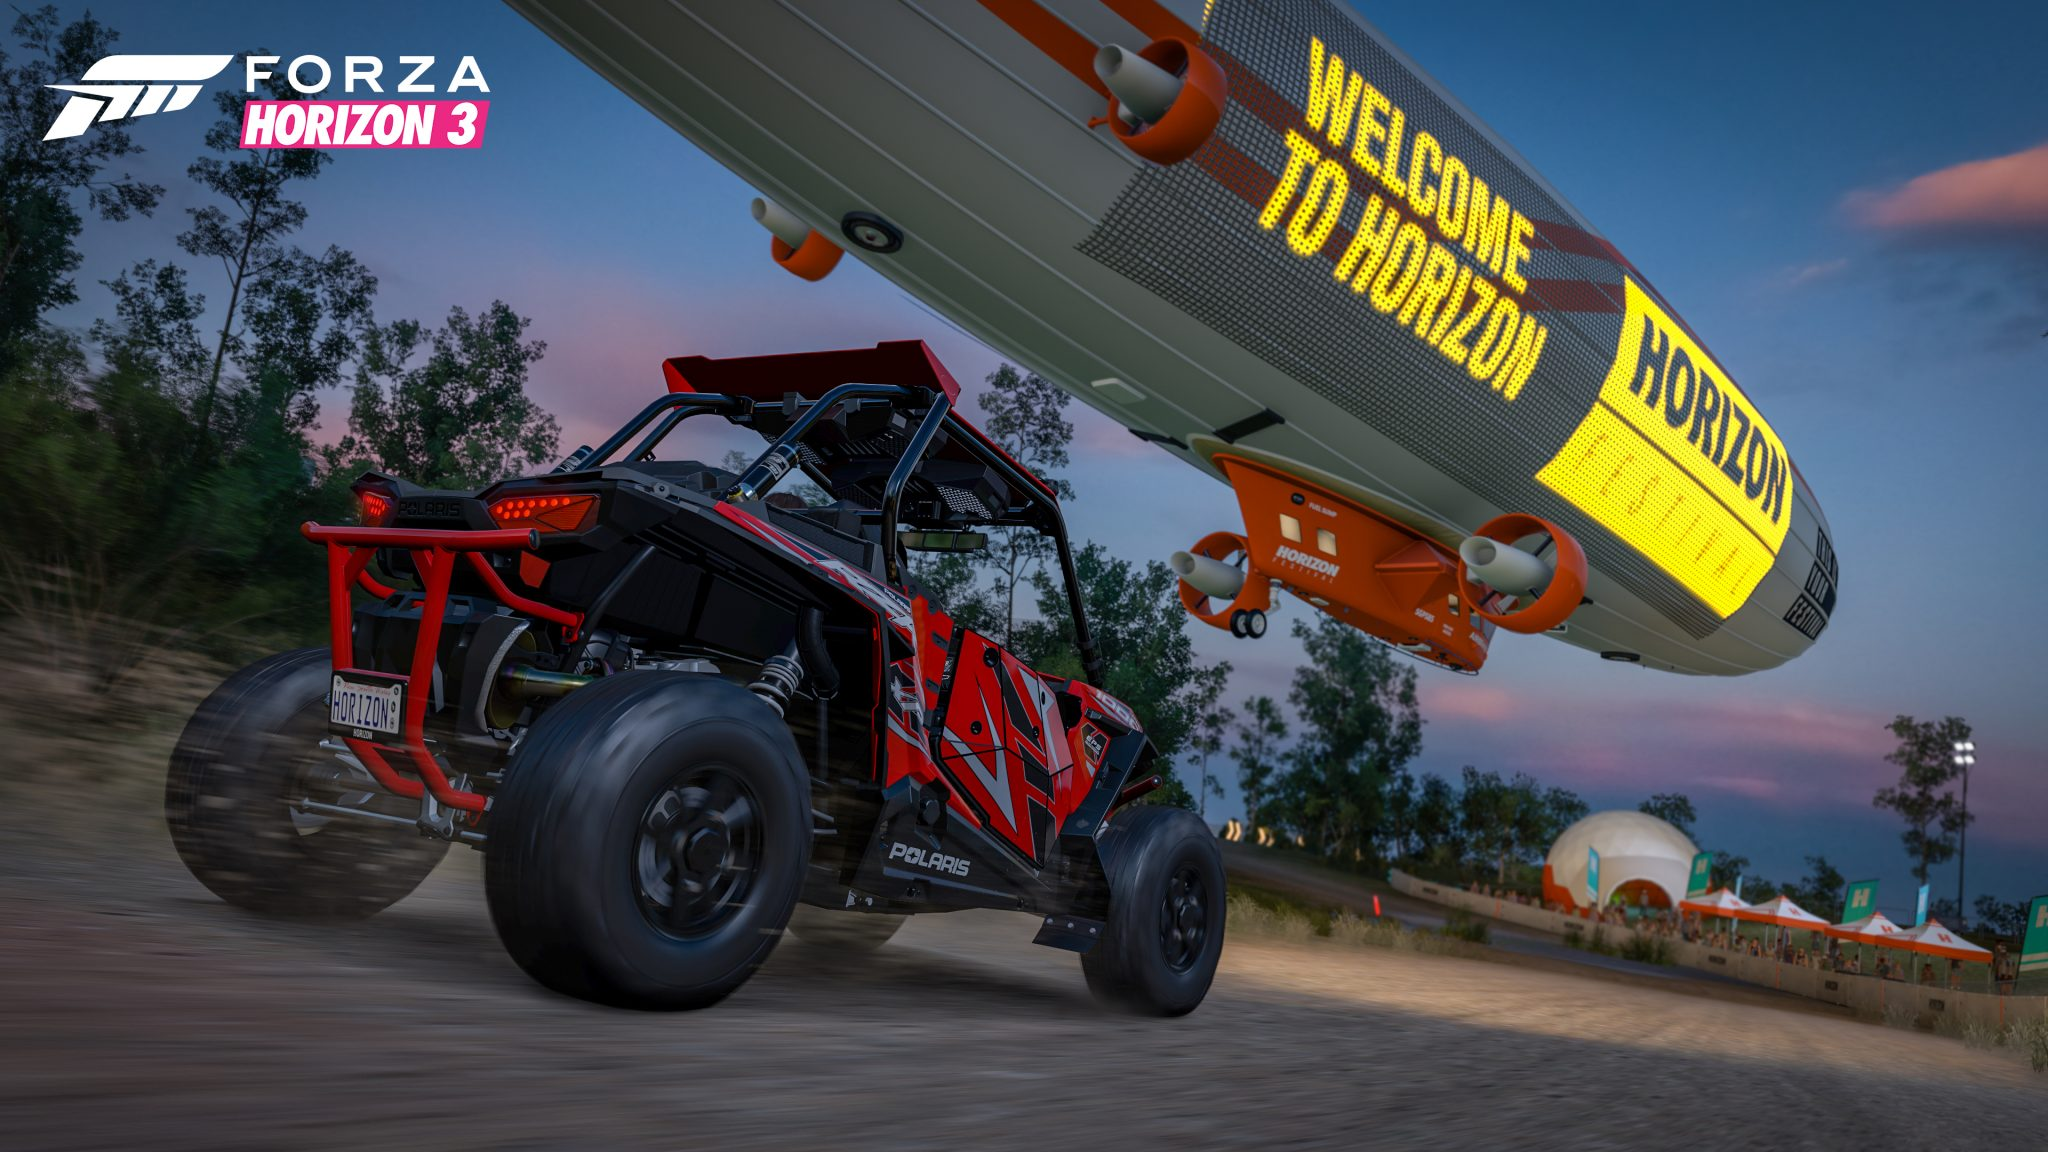 'Forza Horizon 3' review, updates: Australian setting provides incredibly realistic graphics